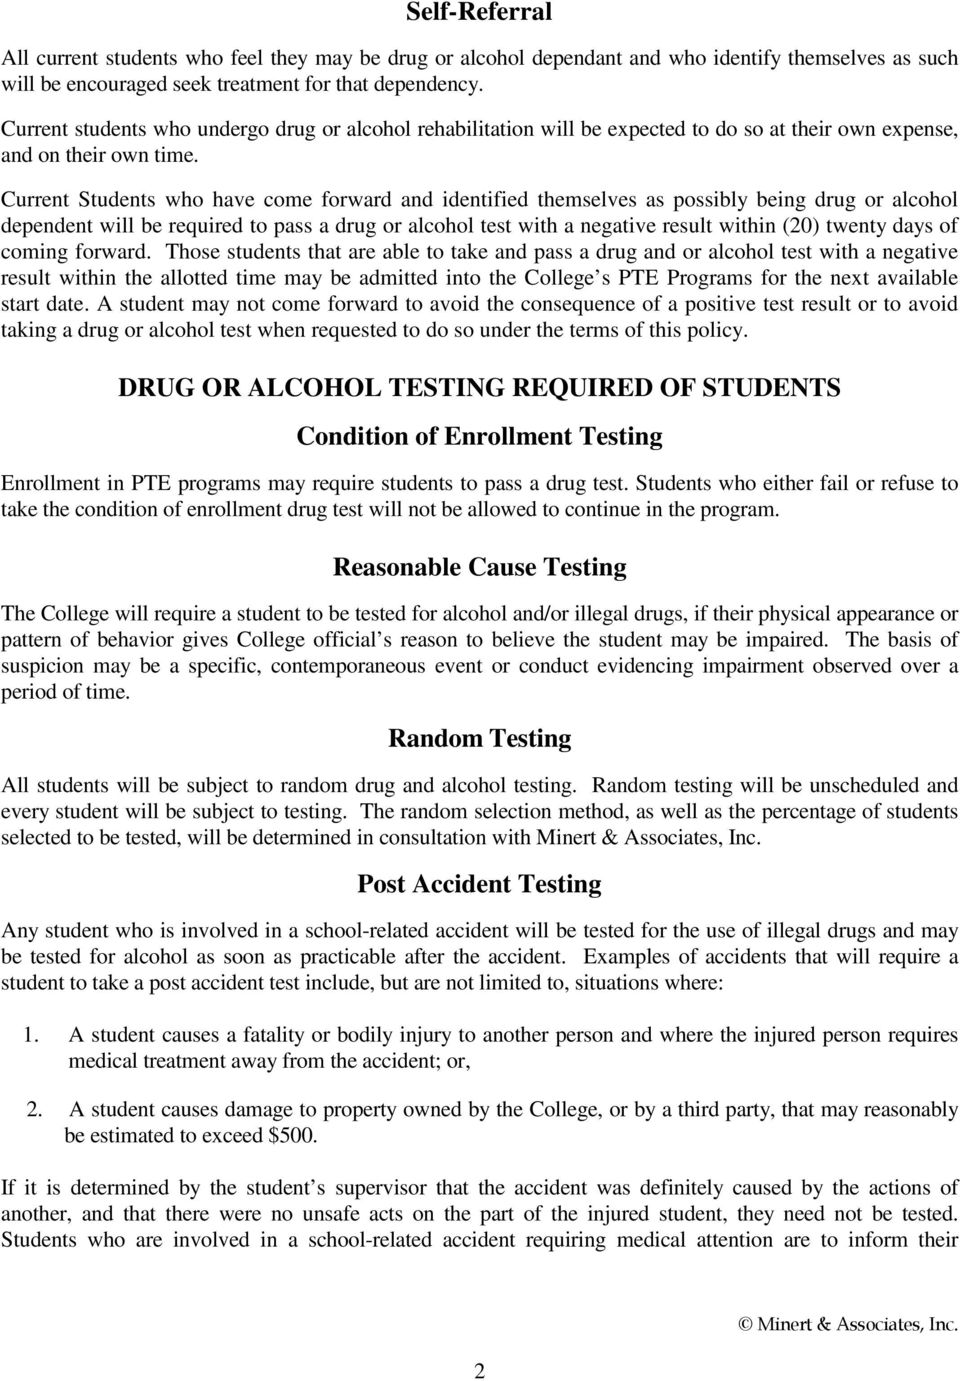 Current Students who have come forward and identified themselves as possibly being drug or alcohol dependent will be required to pass a drug or alcohol test with a negative result within (20) twenty